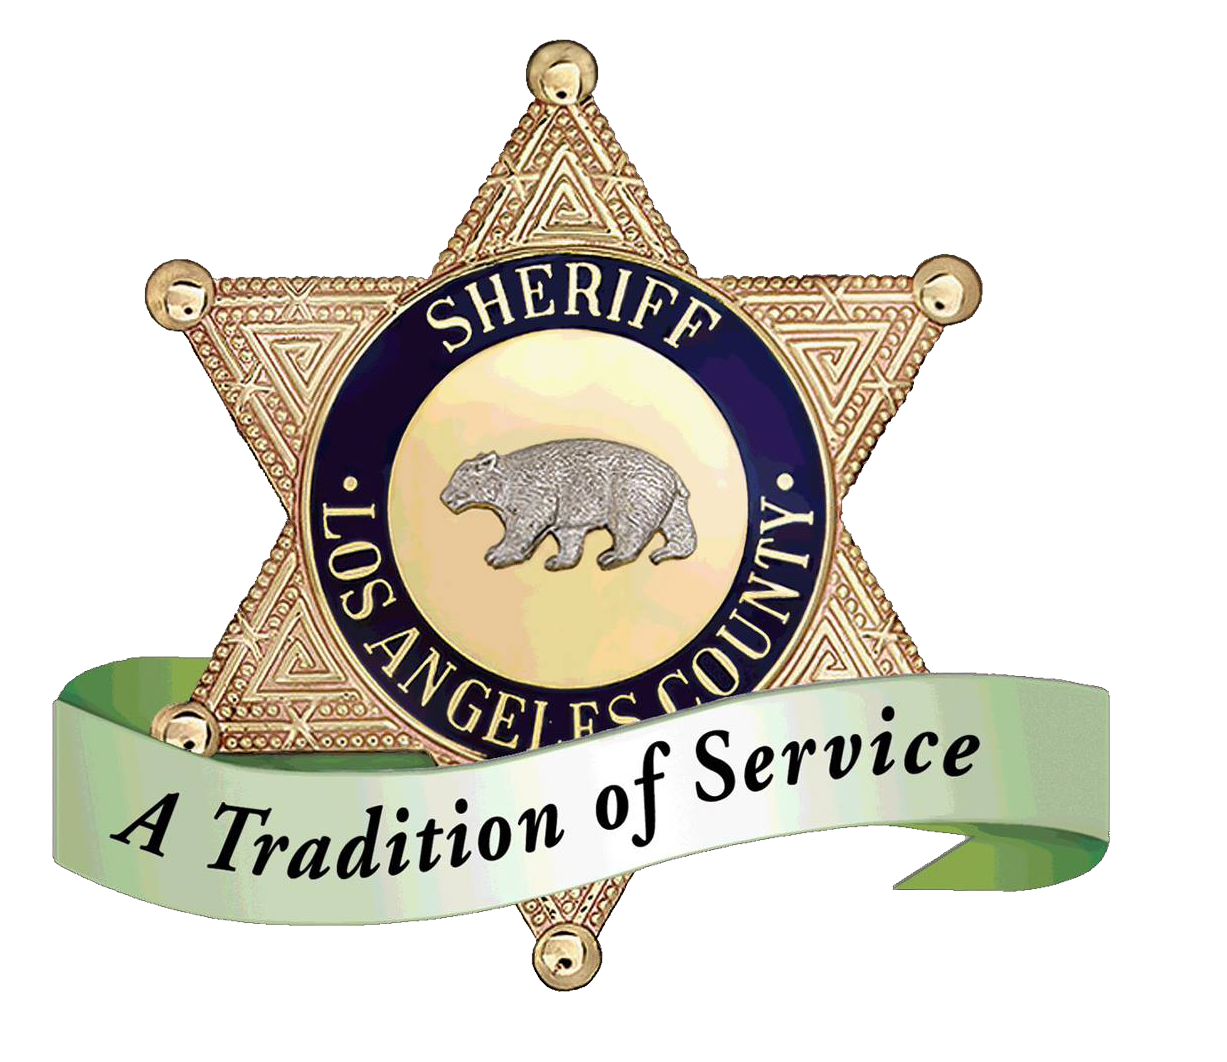 Los Angeles County Sheriff's Department - West Hollywood Station